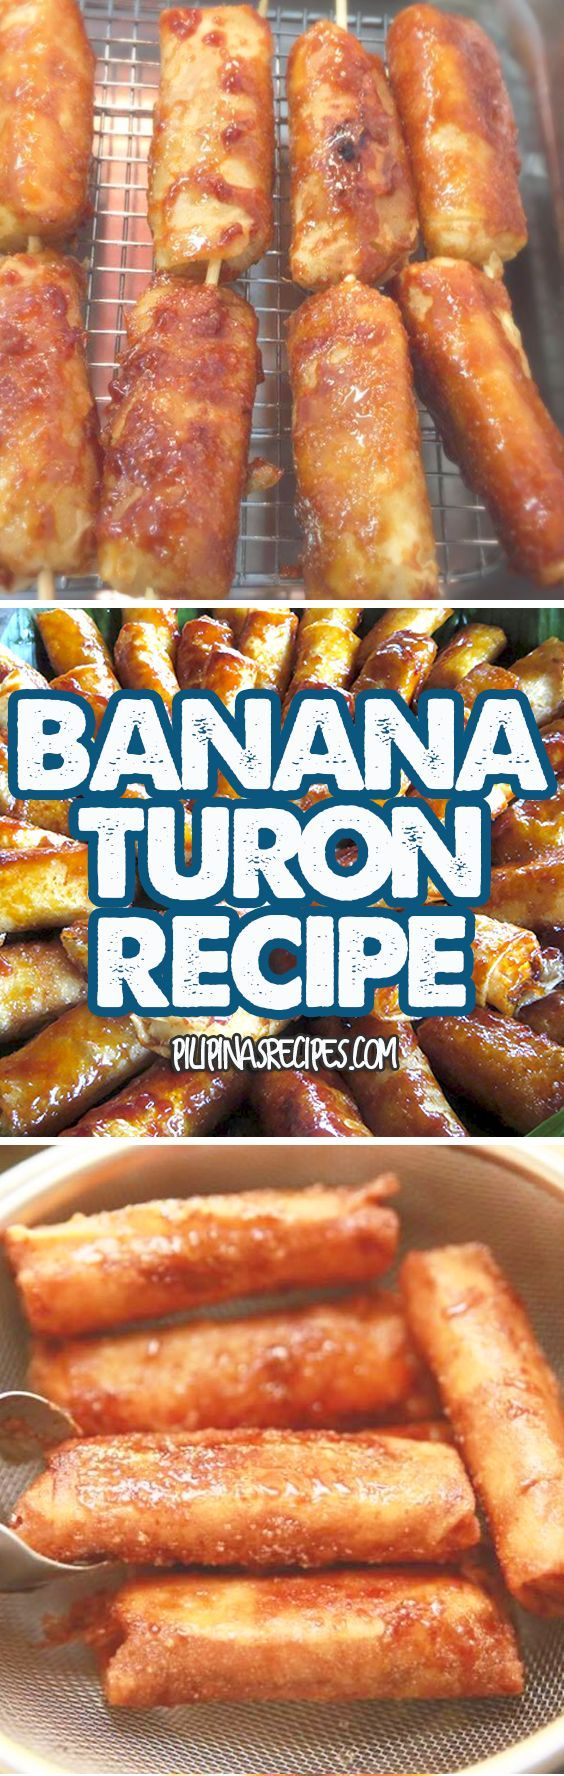 "Turon is a common dessert or snack food in the Philippines. Many ""Street Food"" Vendors also sell it because it's popular among Pinoys."